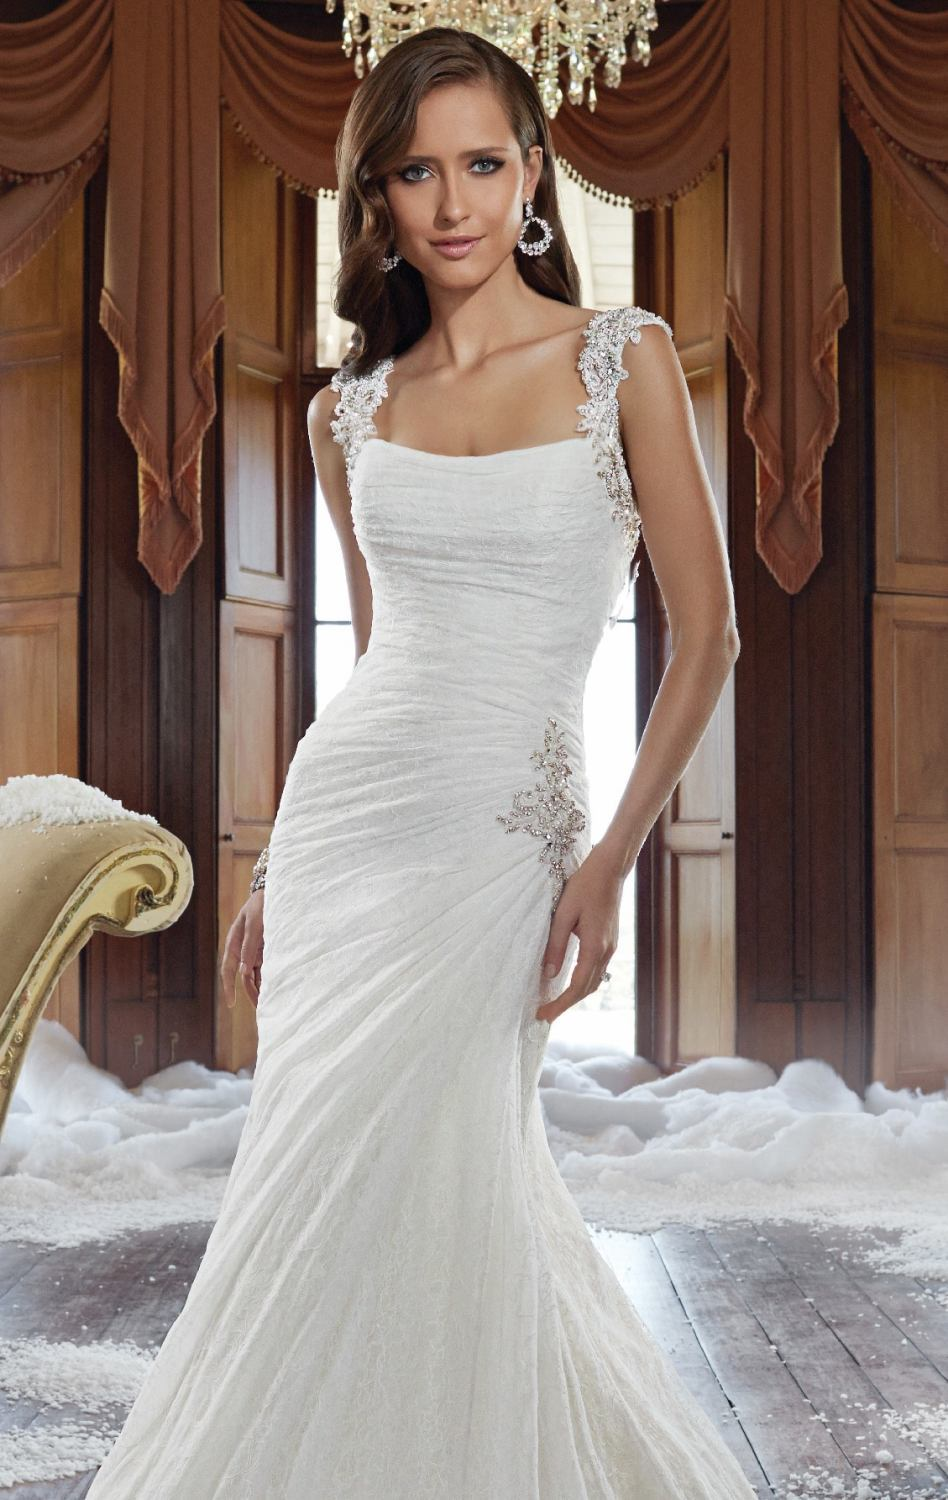 timeless wedding dresses simple elegant wedding dress 25 Best Ideas about Timeless Wedding Dresses on Pinterest Lace styles for wedding Gowns for weddings and Lace bride